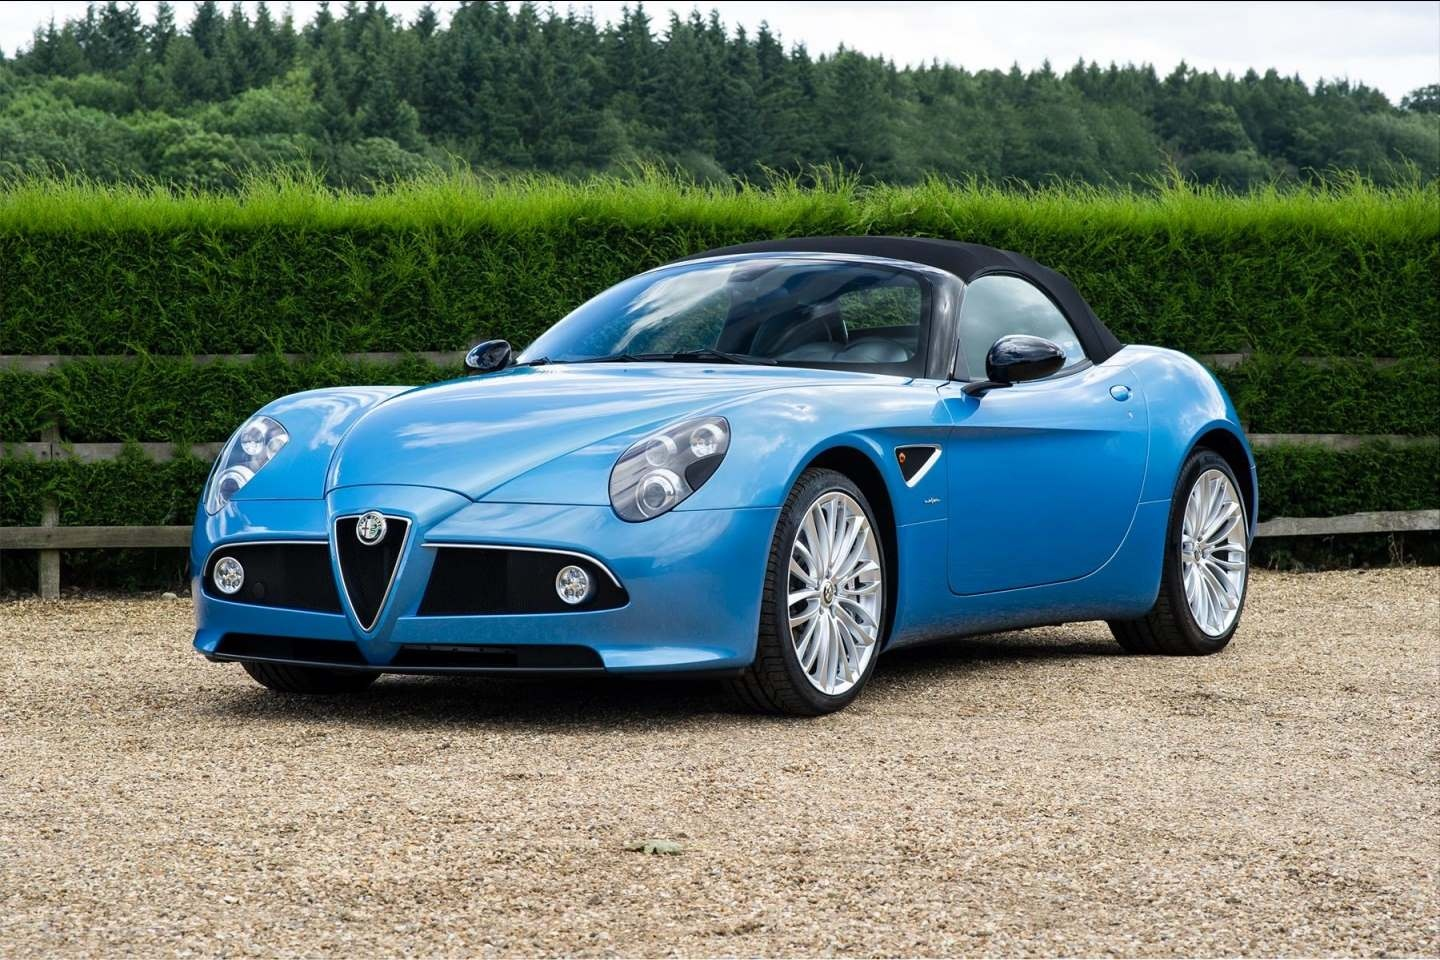 alfa romeo 8c ferrari engine html with Alfa Romeo 8c Spider on Alfa Romeo 8C Spider also 2002 Audi S4 Interior 8ee47112ecaafe24 in addition Alfa Romeo 8c  petizione 2007 further 180 Renault Fuego additionally Alfa Romeo 8c Spider 2008.